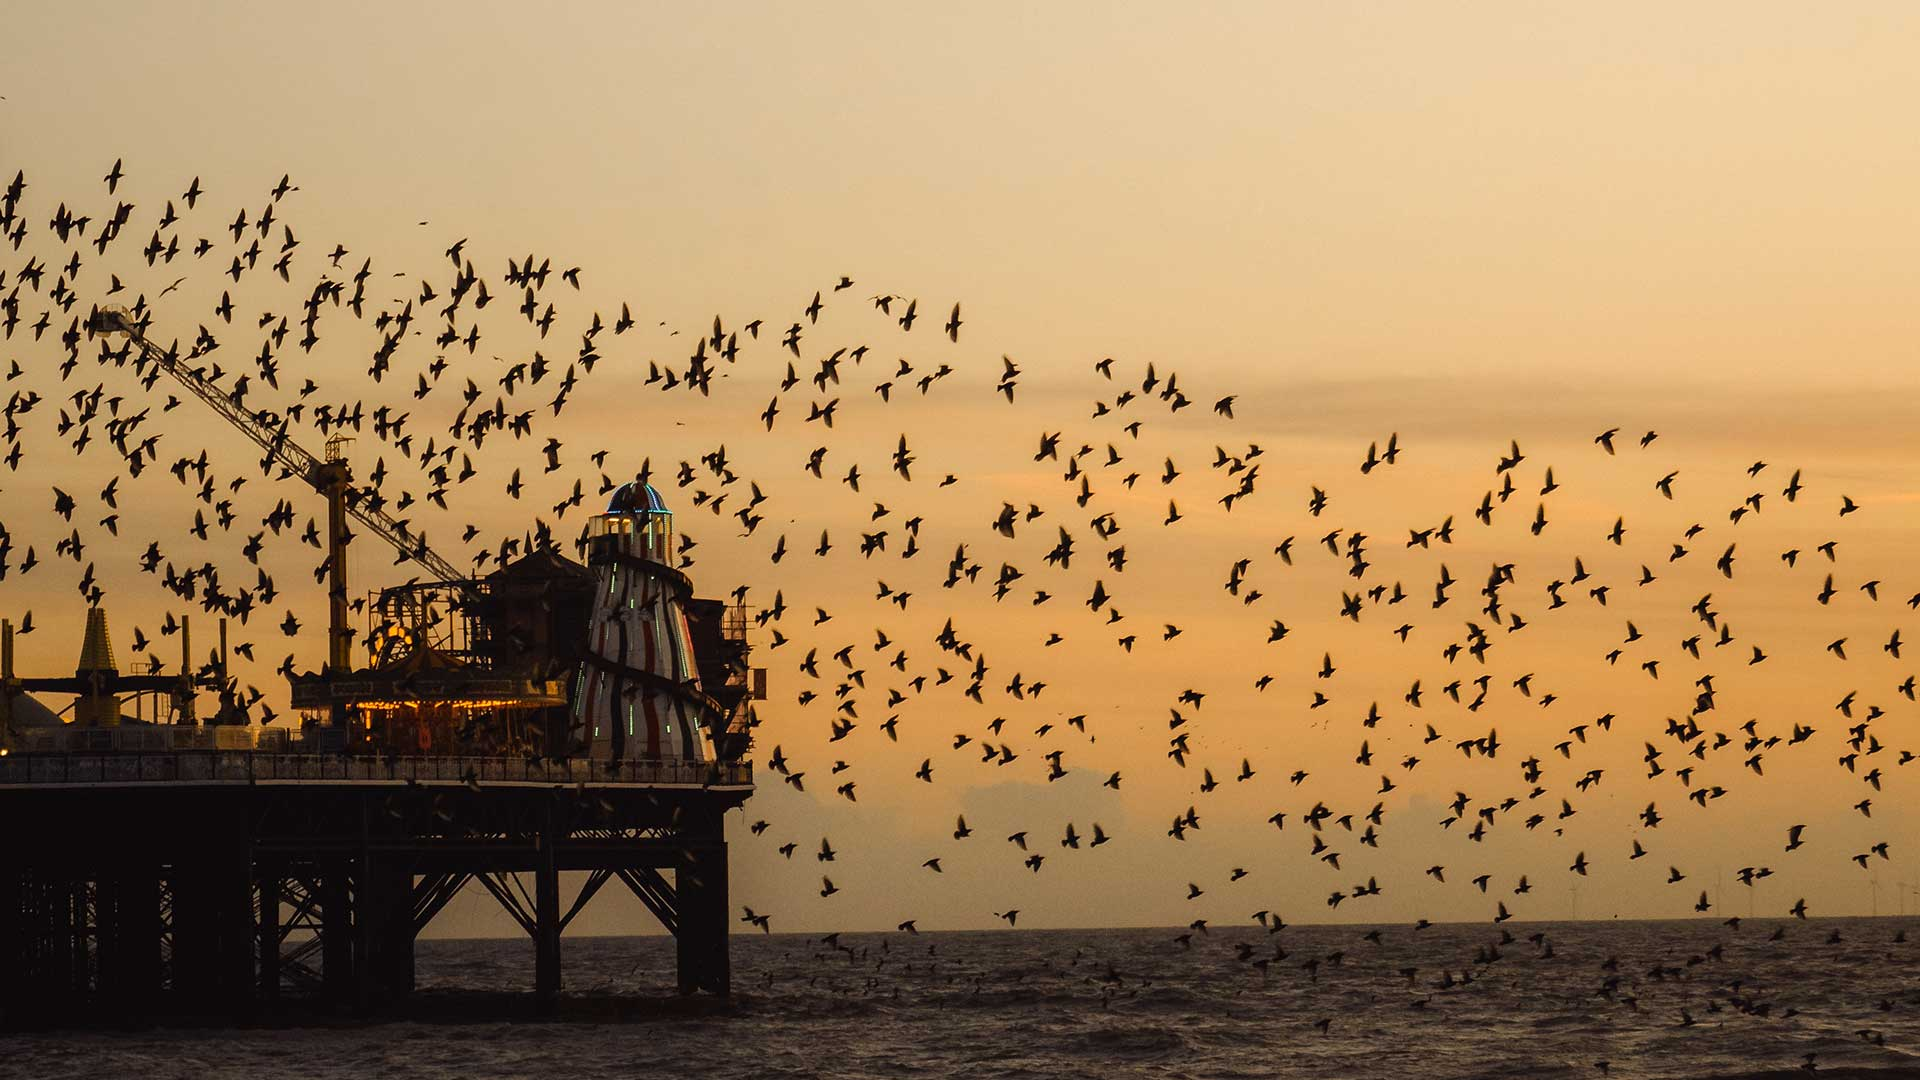 A murmuration of starlings flying over Brighton's Palace Pier